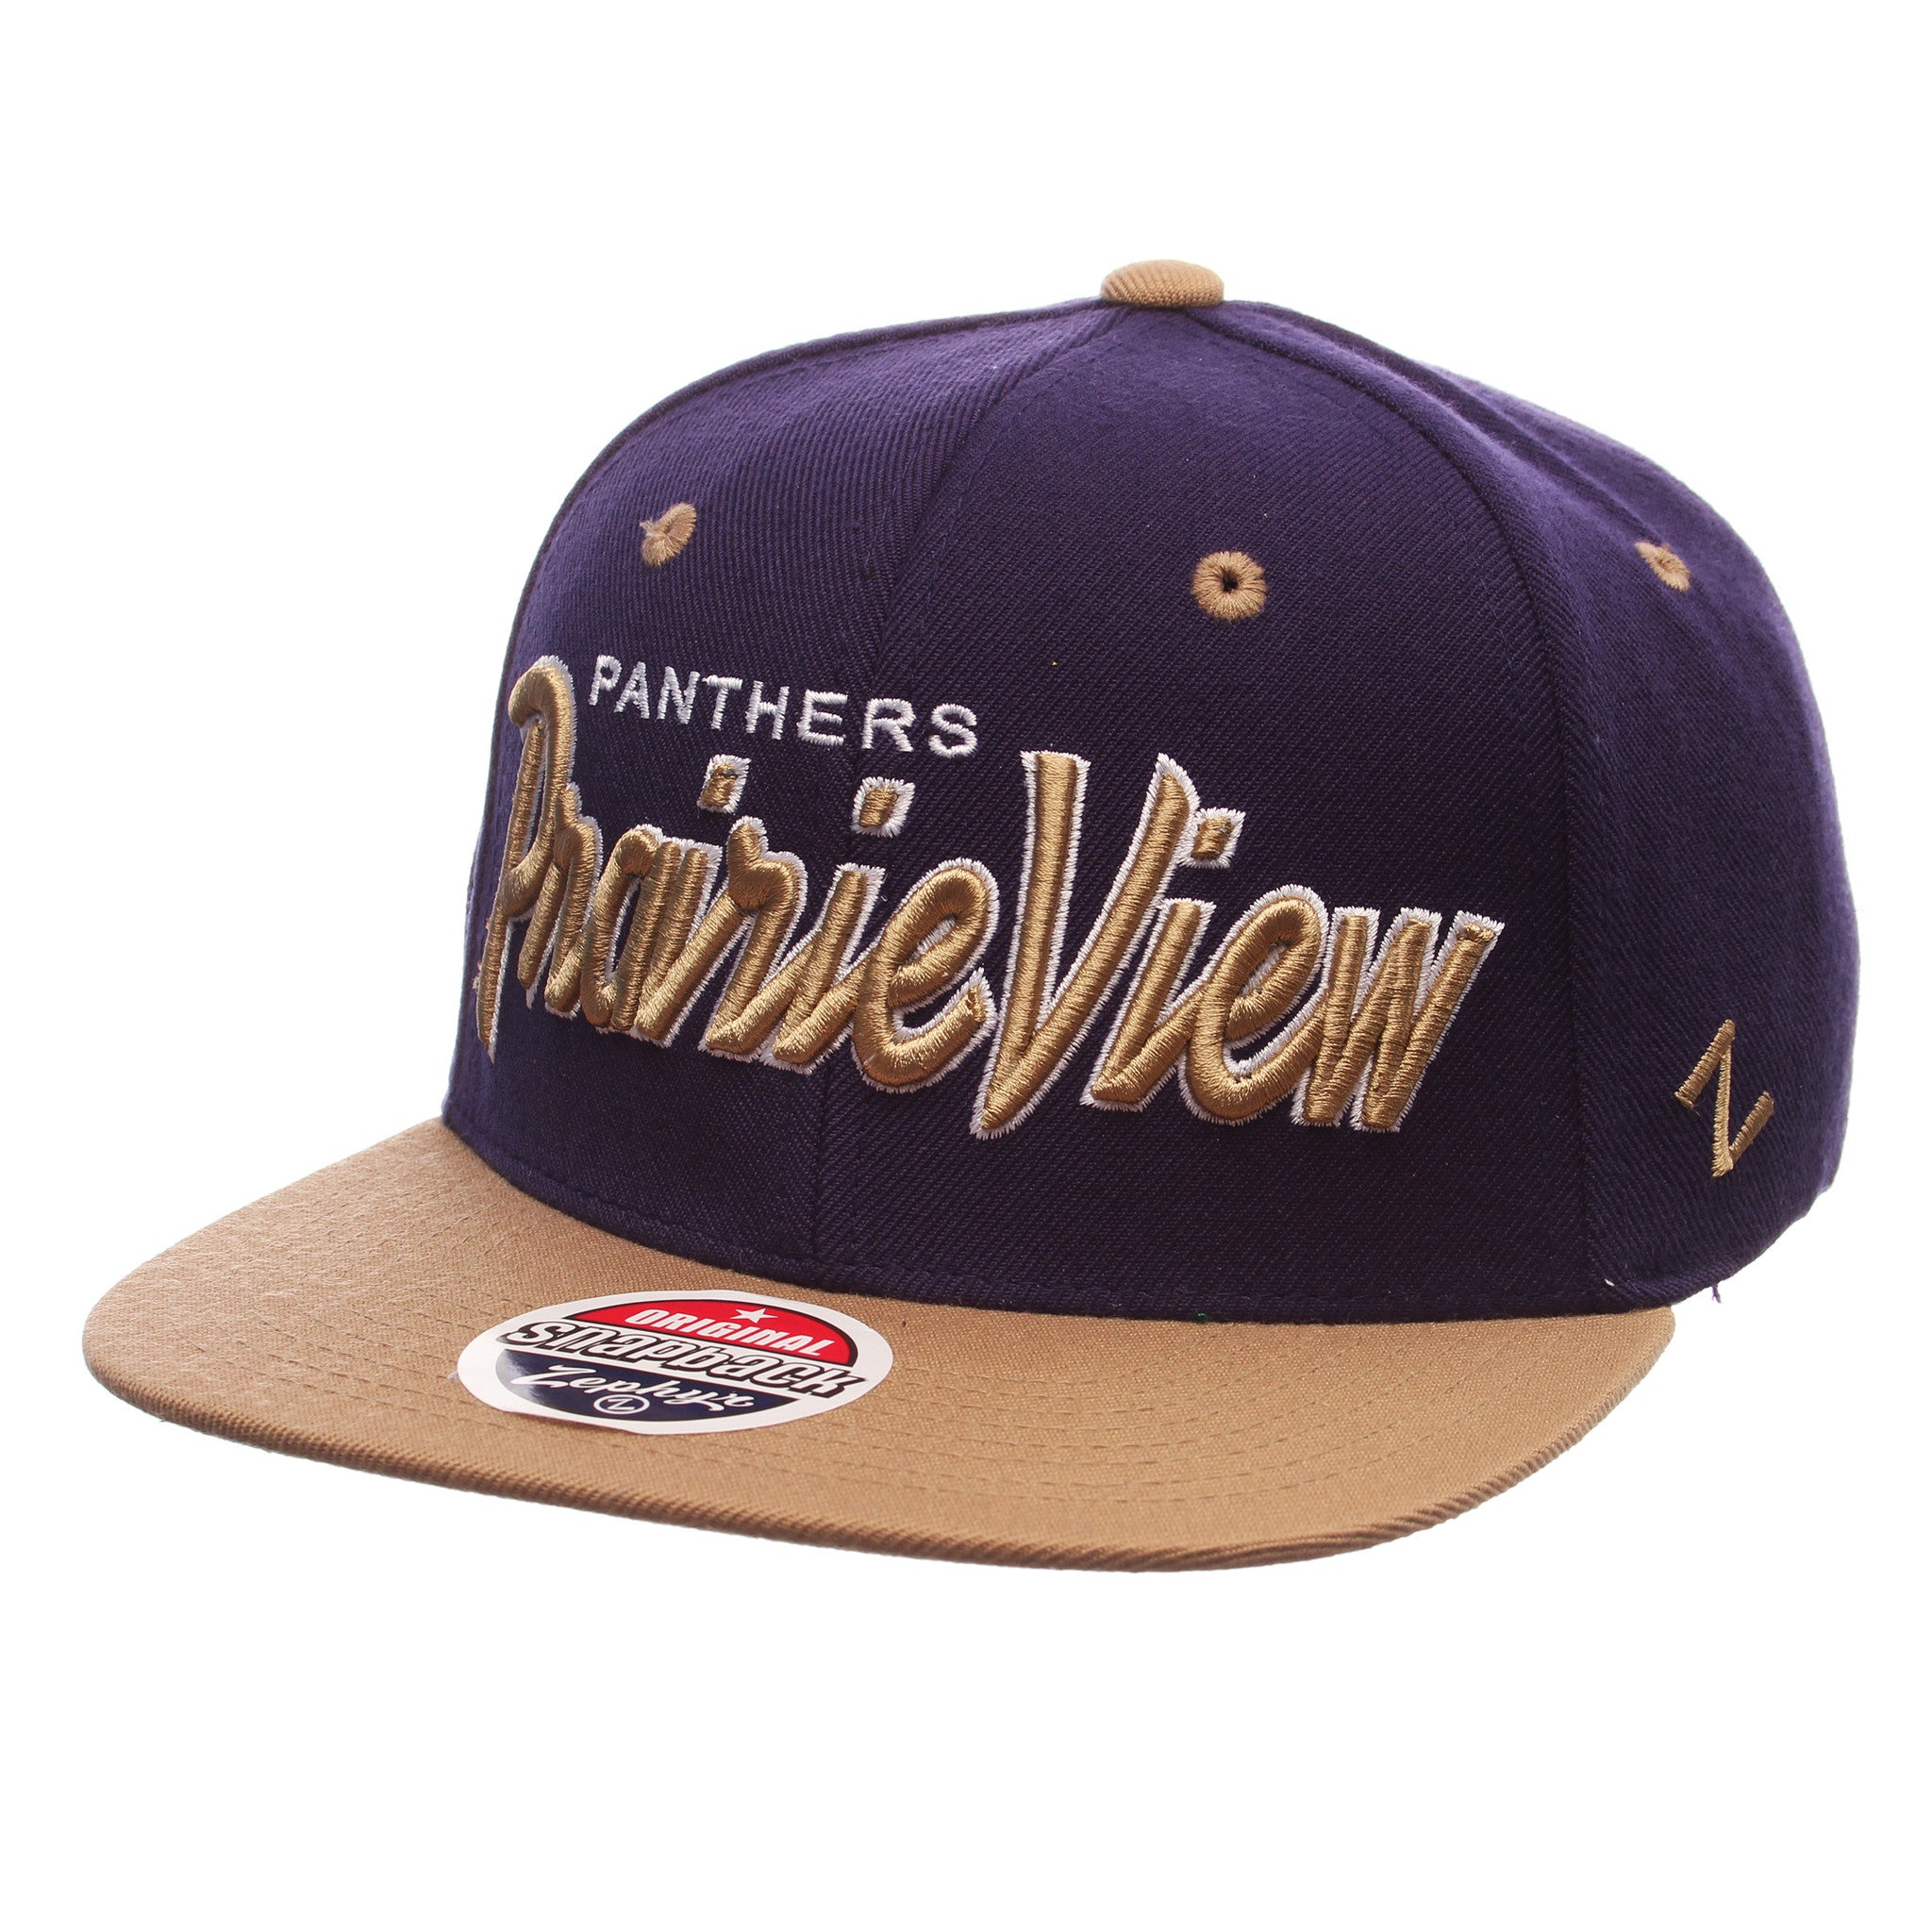 Prairie View A&M University Headliner 32/5 (High) (PANTHERS/PRAIRIE VIEW) Purple Dark Zwool Adjustable Snapback hats by Zephyr